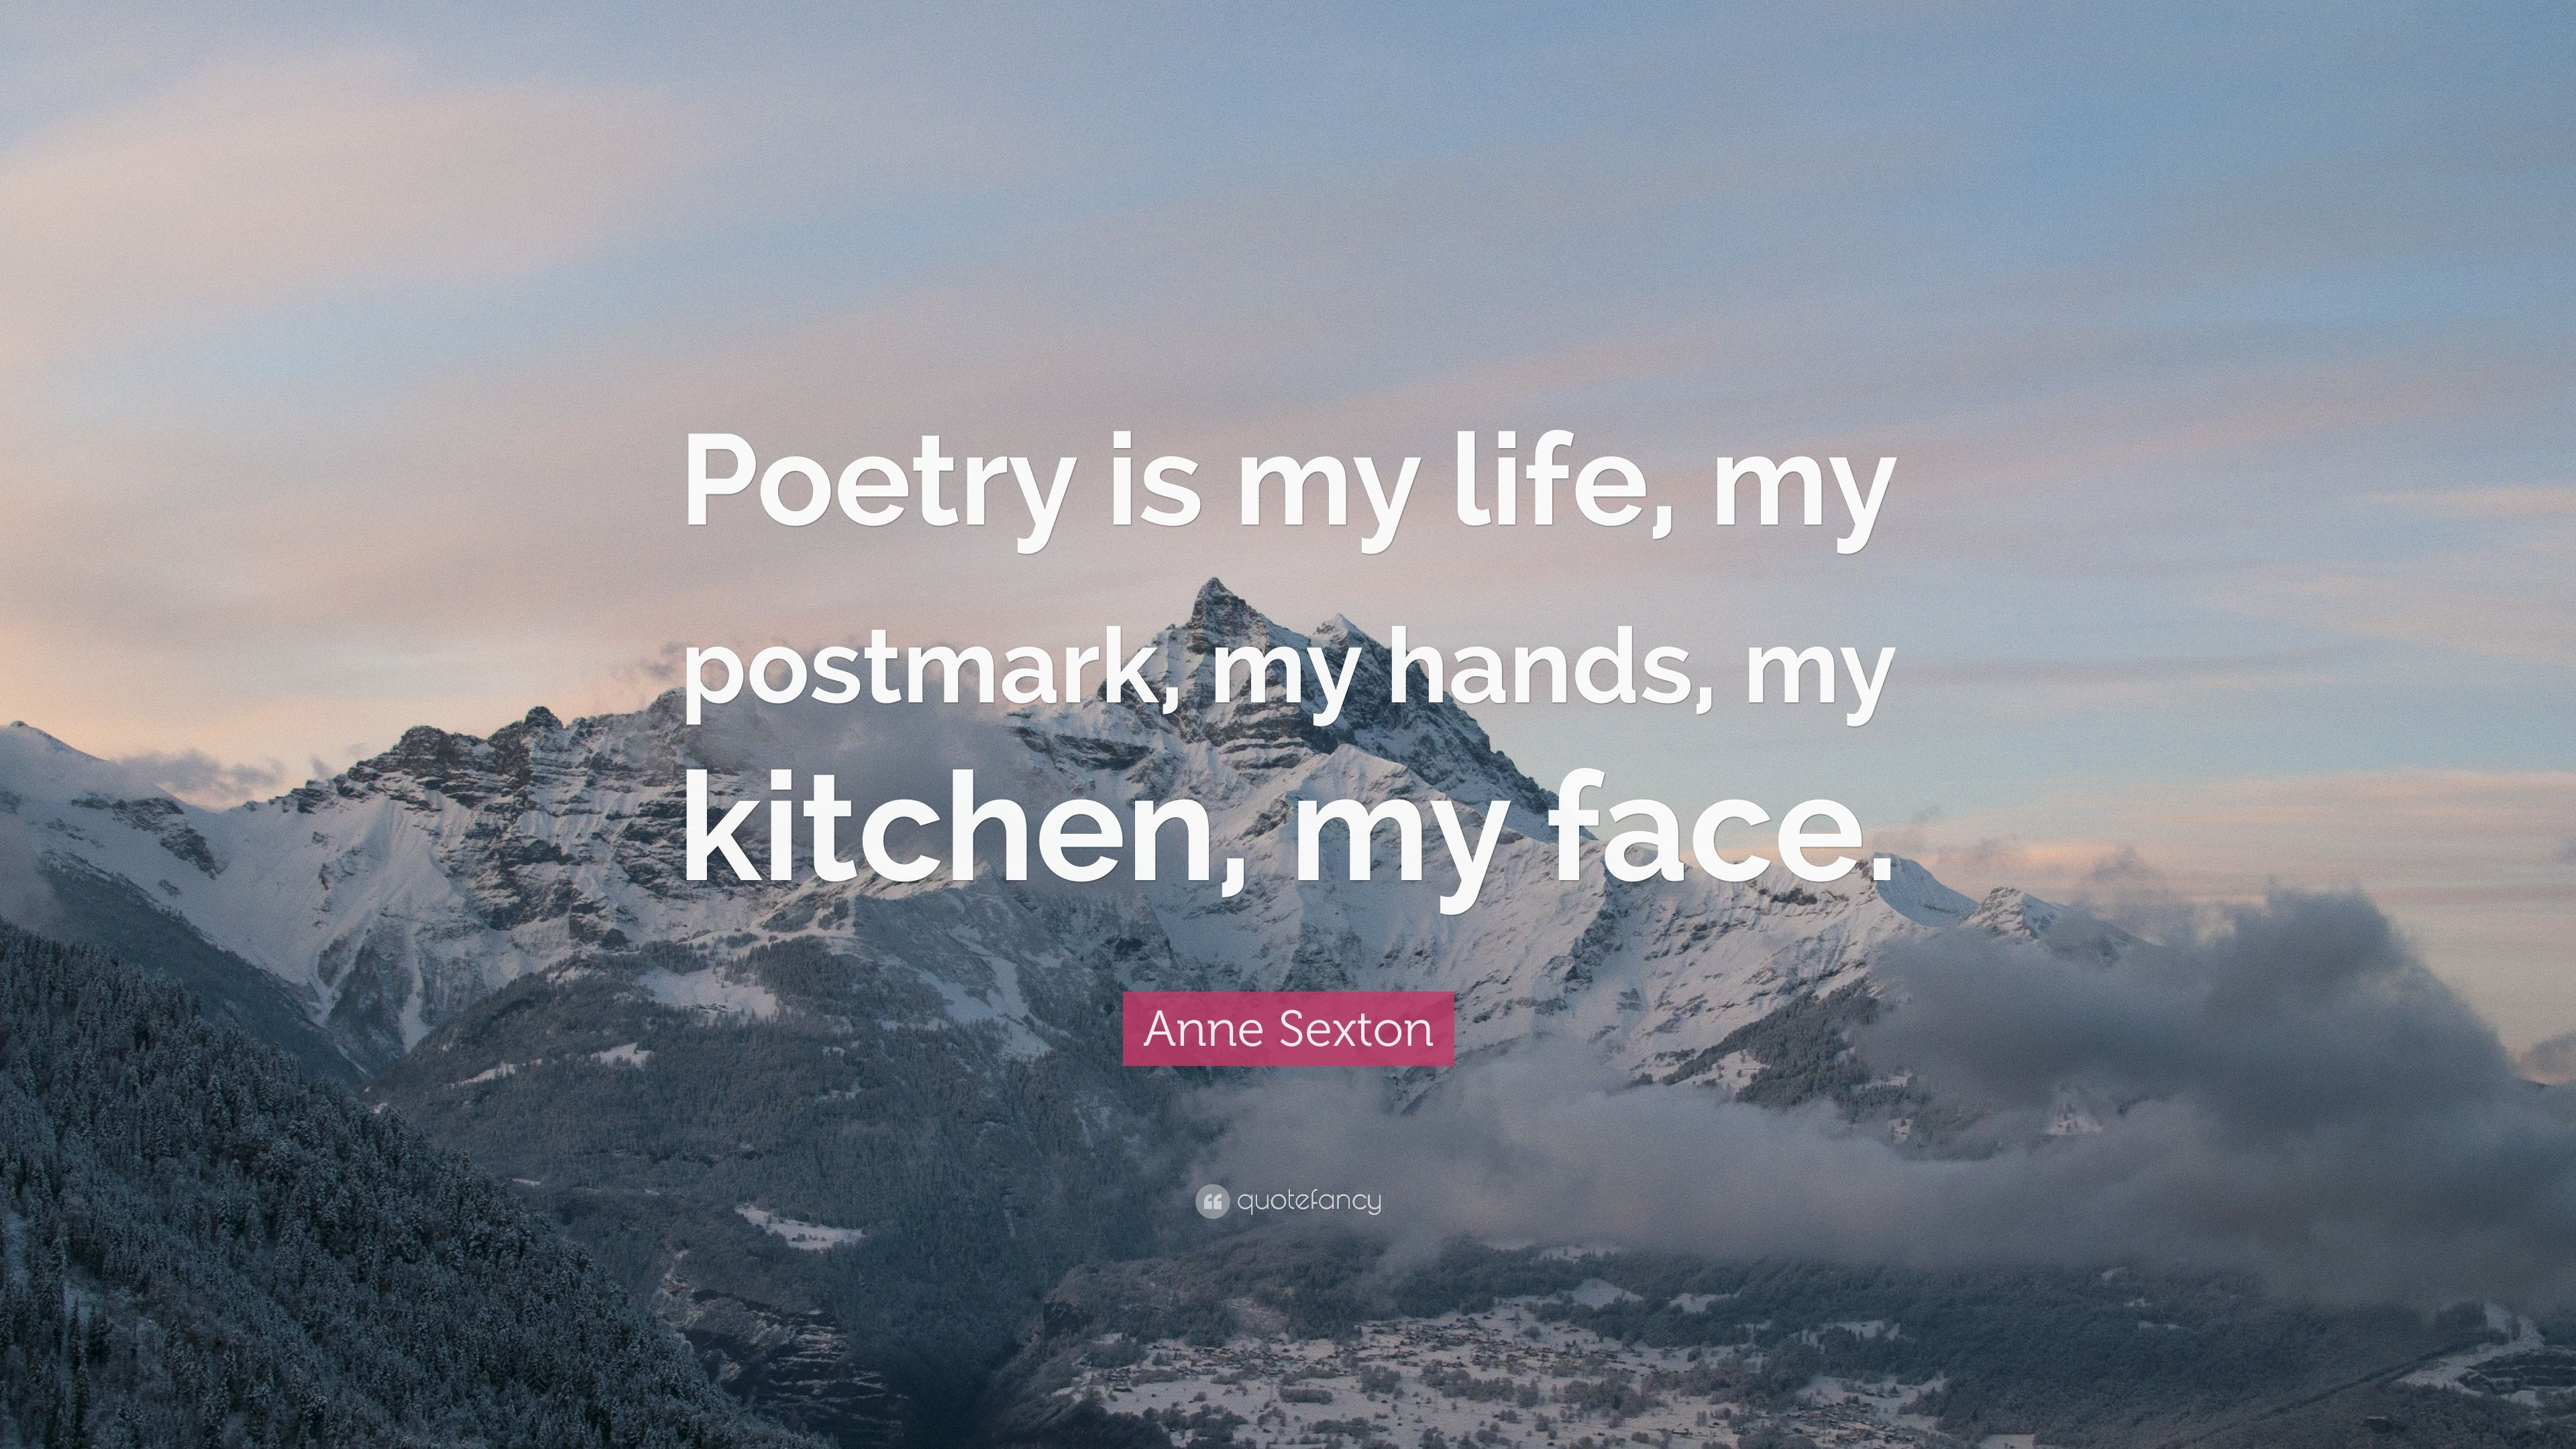 Anne Sexton Quote: U201cPoetry Is My Life, My Postmark, My Hands,